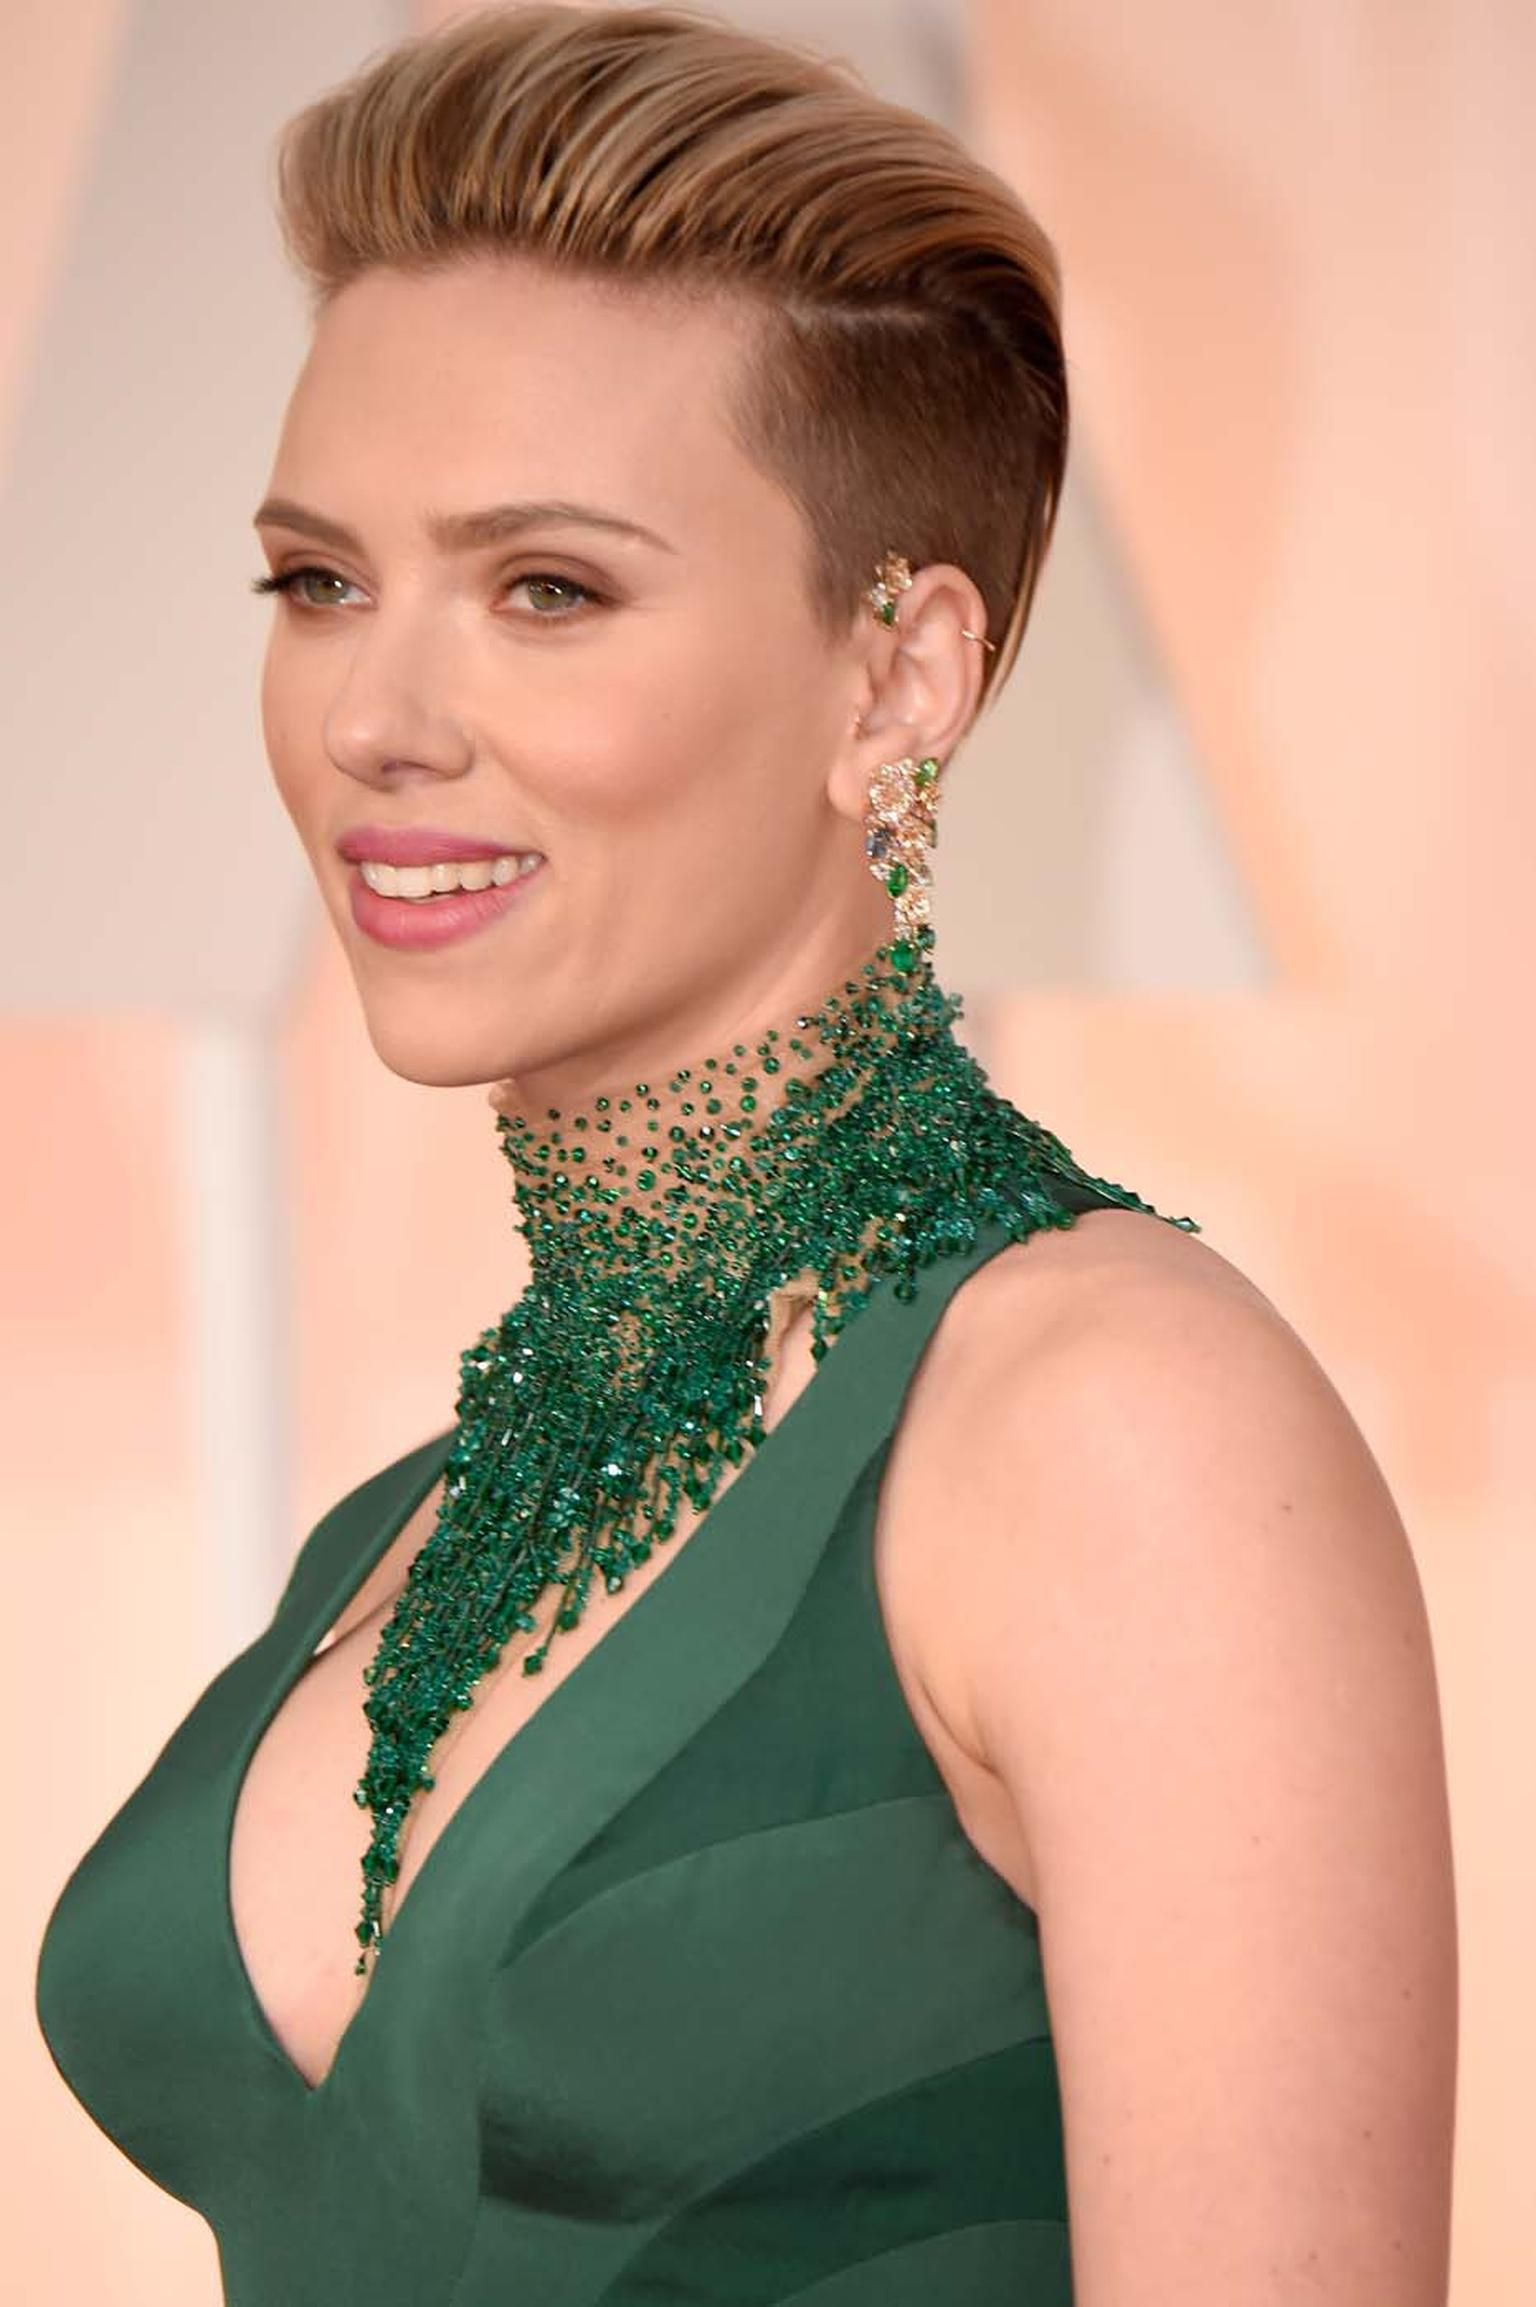 Actress Scarlett Johansson wowed the crowds with her red carpet jewelry, opting to accessorize her emerald green Atelier Versace gown, complete with dramatic Swarovski beaded collar, with a pair of mismatched earrings, ultra-modern Piaget Mediterranean Ga